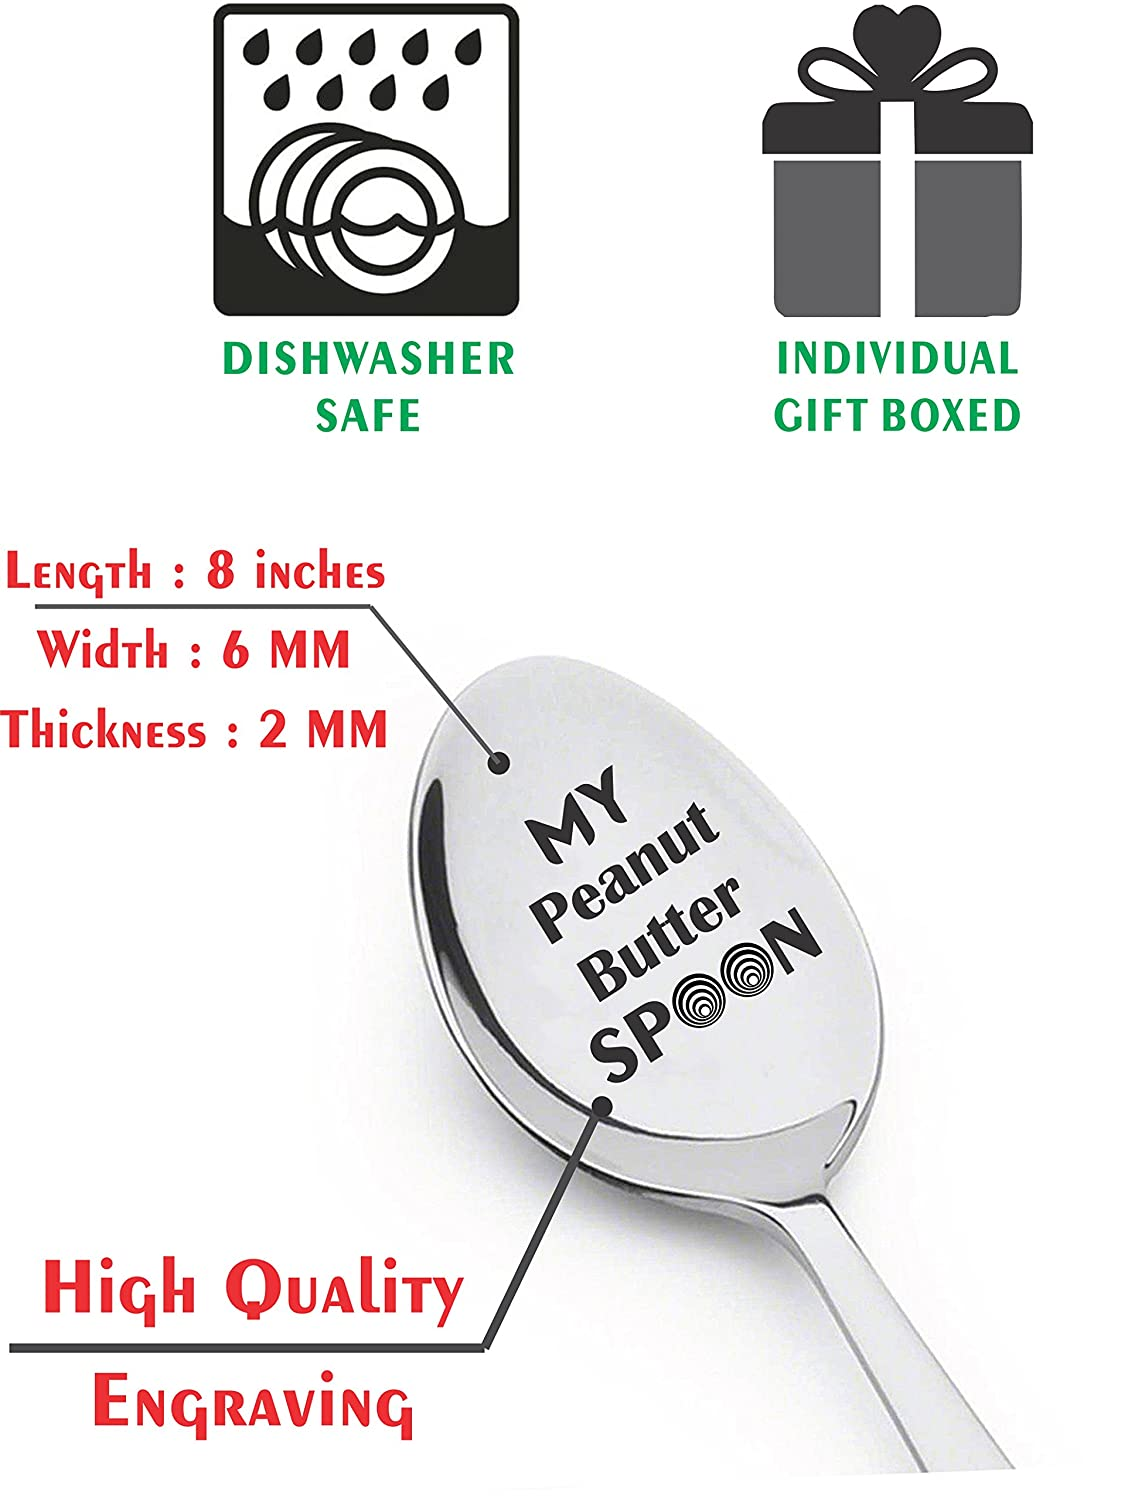 My Peanut Butter Spoon Engraved Stainless Steel Silverware Flatware Unique Birthday Easter Basket Gifts